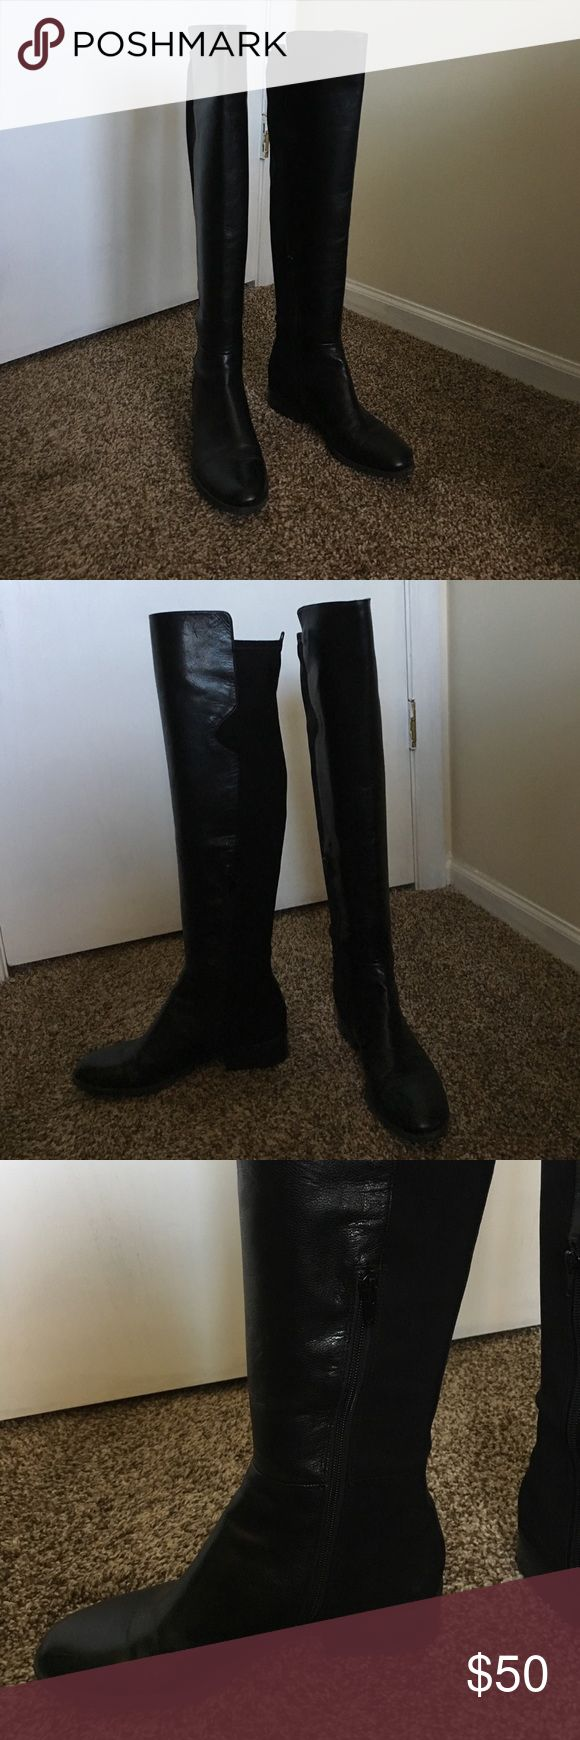 "Like new Nine West black leather knee high boots Like new Nine West black leather knee high boots! Worn maybe 3x. In great condition. Almond toe and 1"" heel. Back of boot has elastase stretch, front is leather. Inside side zipper. Nine West Shoes Heeled Boots"